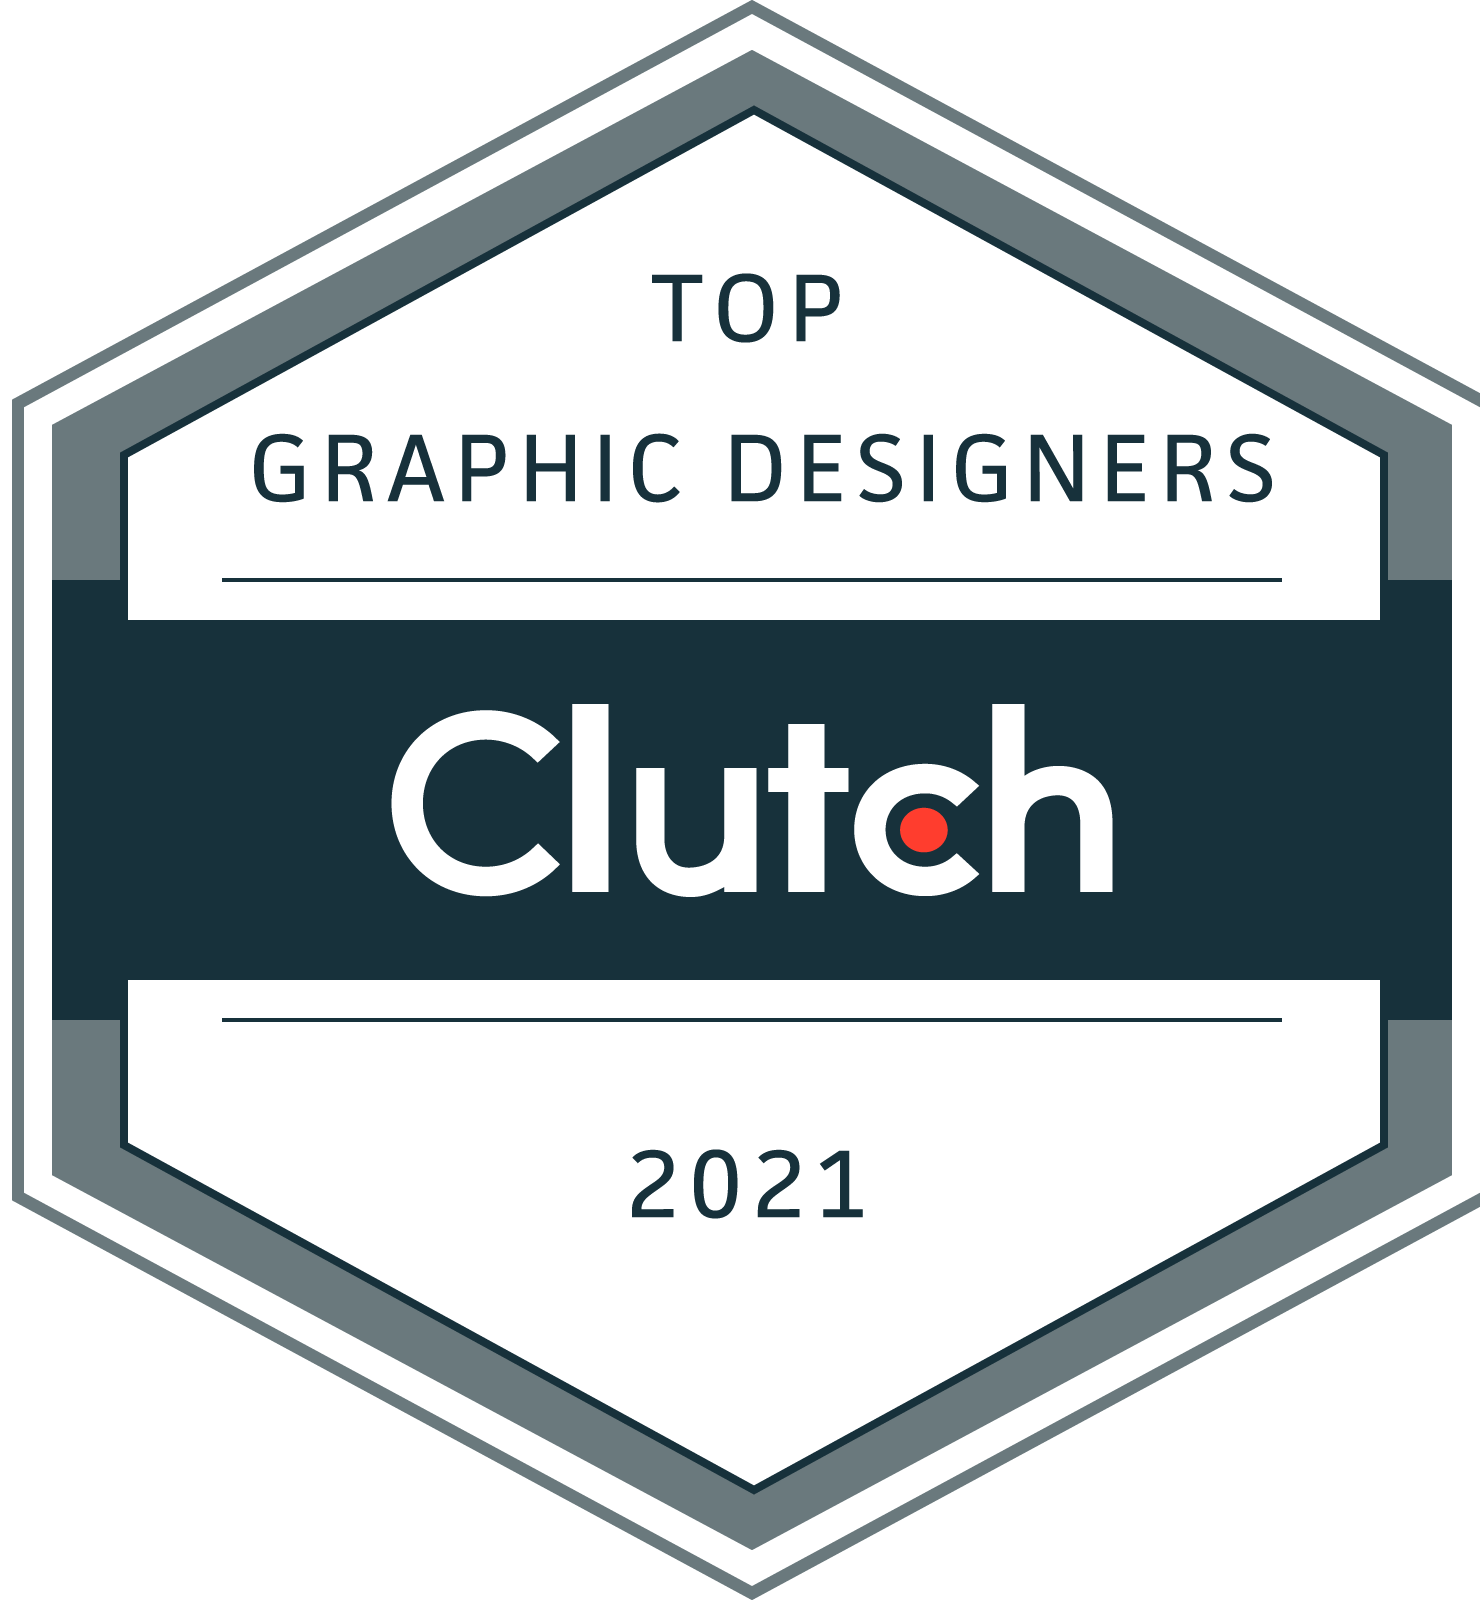 top graphic designers 2021 awarded by clutch